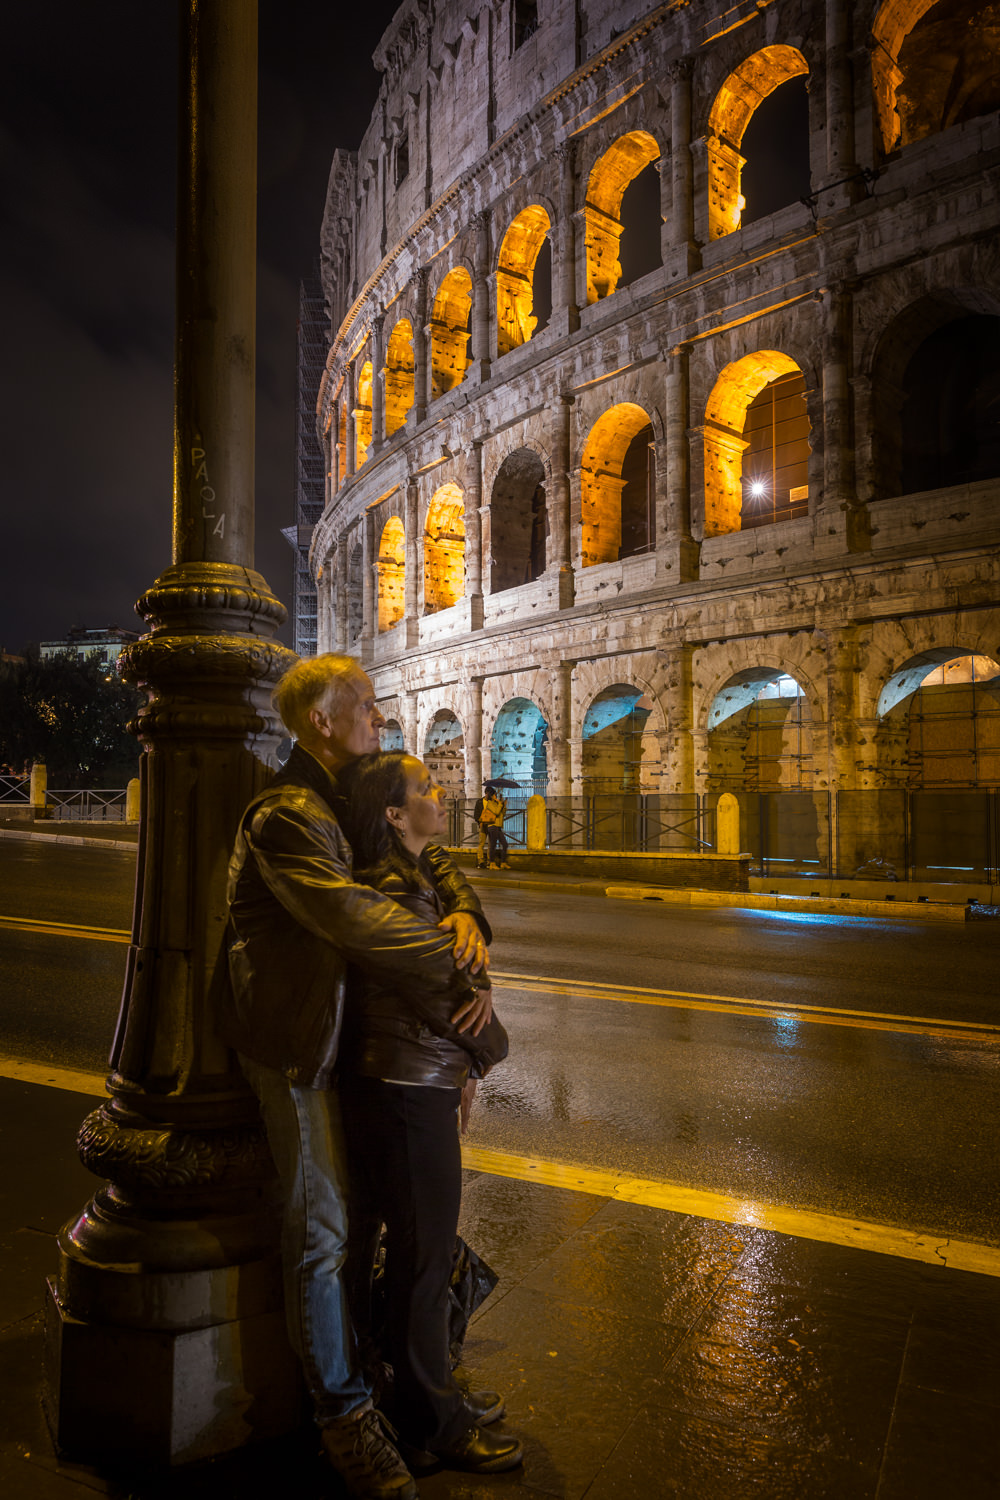 Canoodling at the Roman Coliseum. We got lucky because it was a rainy night which shined up the road. And then the headlights from a bus down the street illuminated out faces.